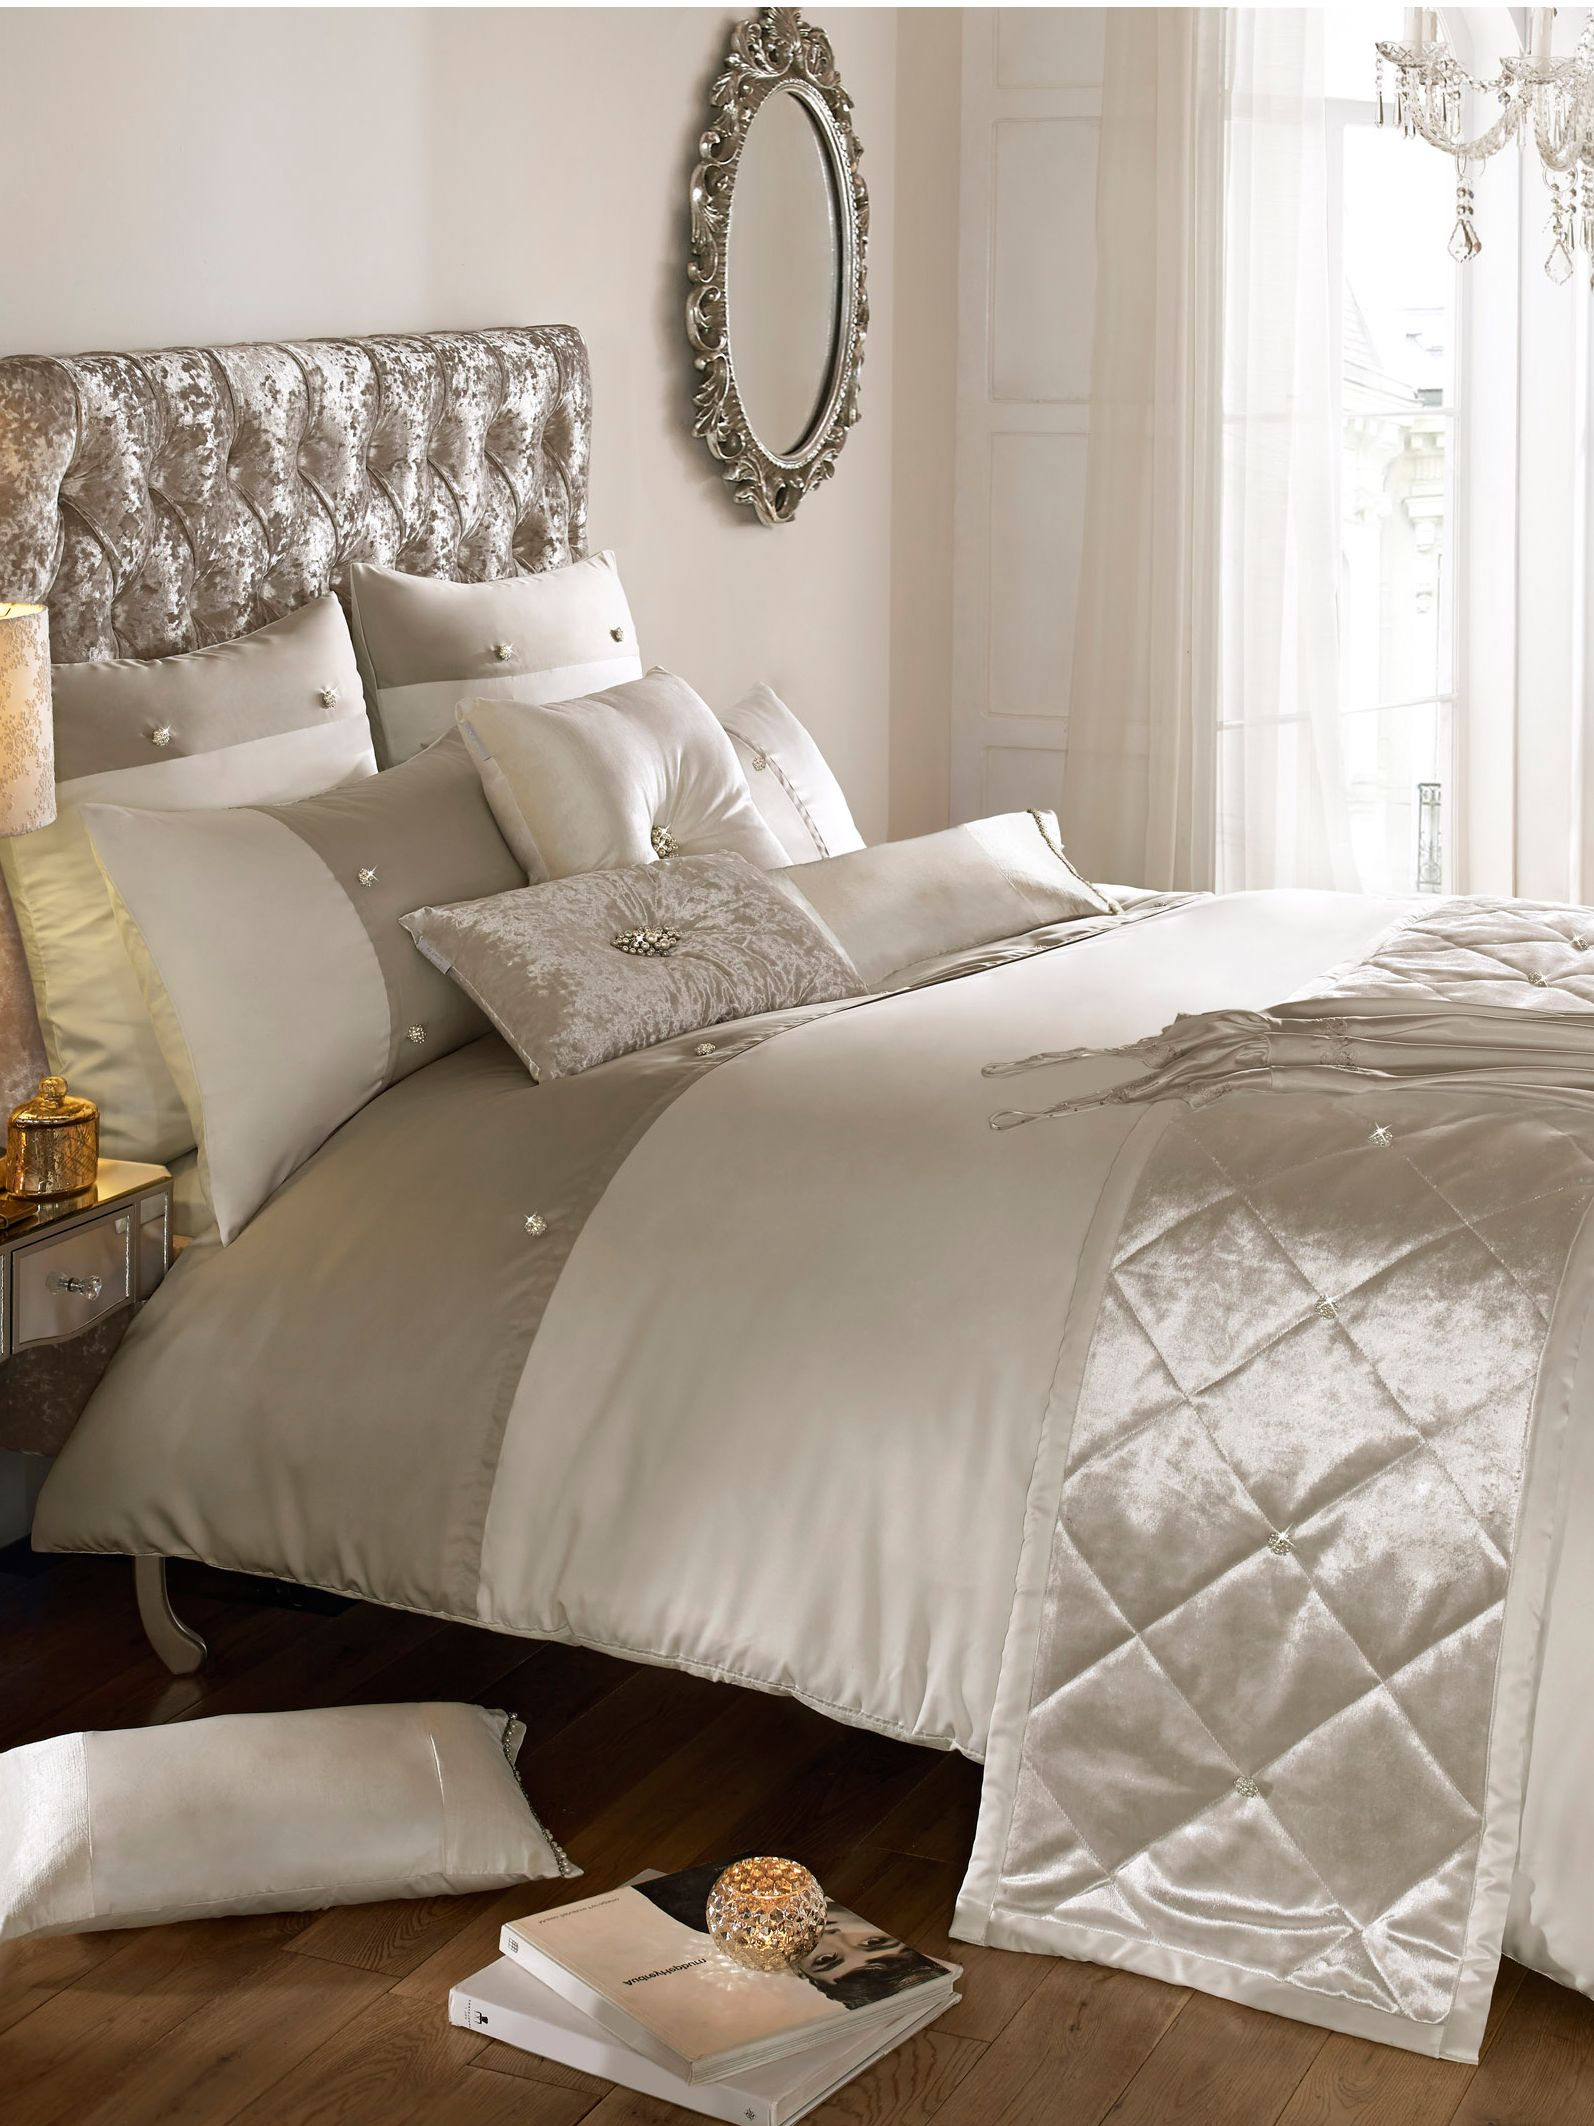 Catarina oyster king duvet set